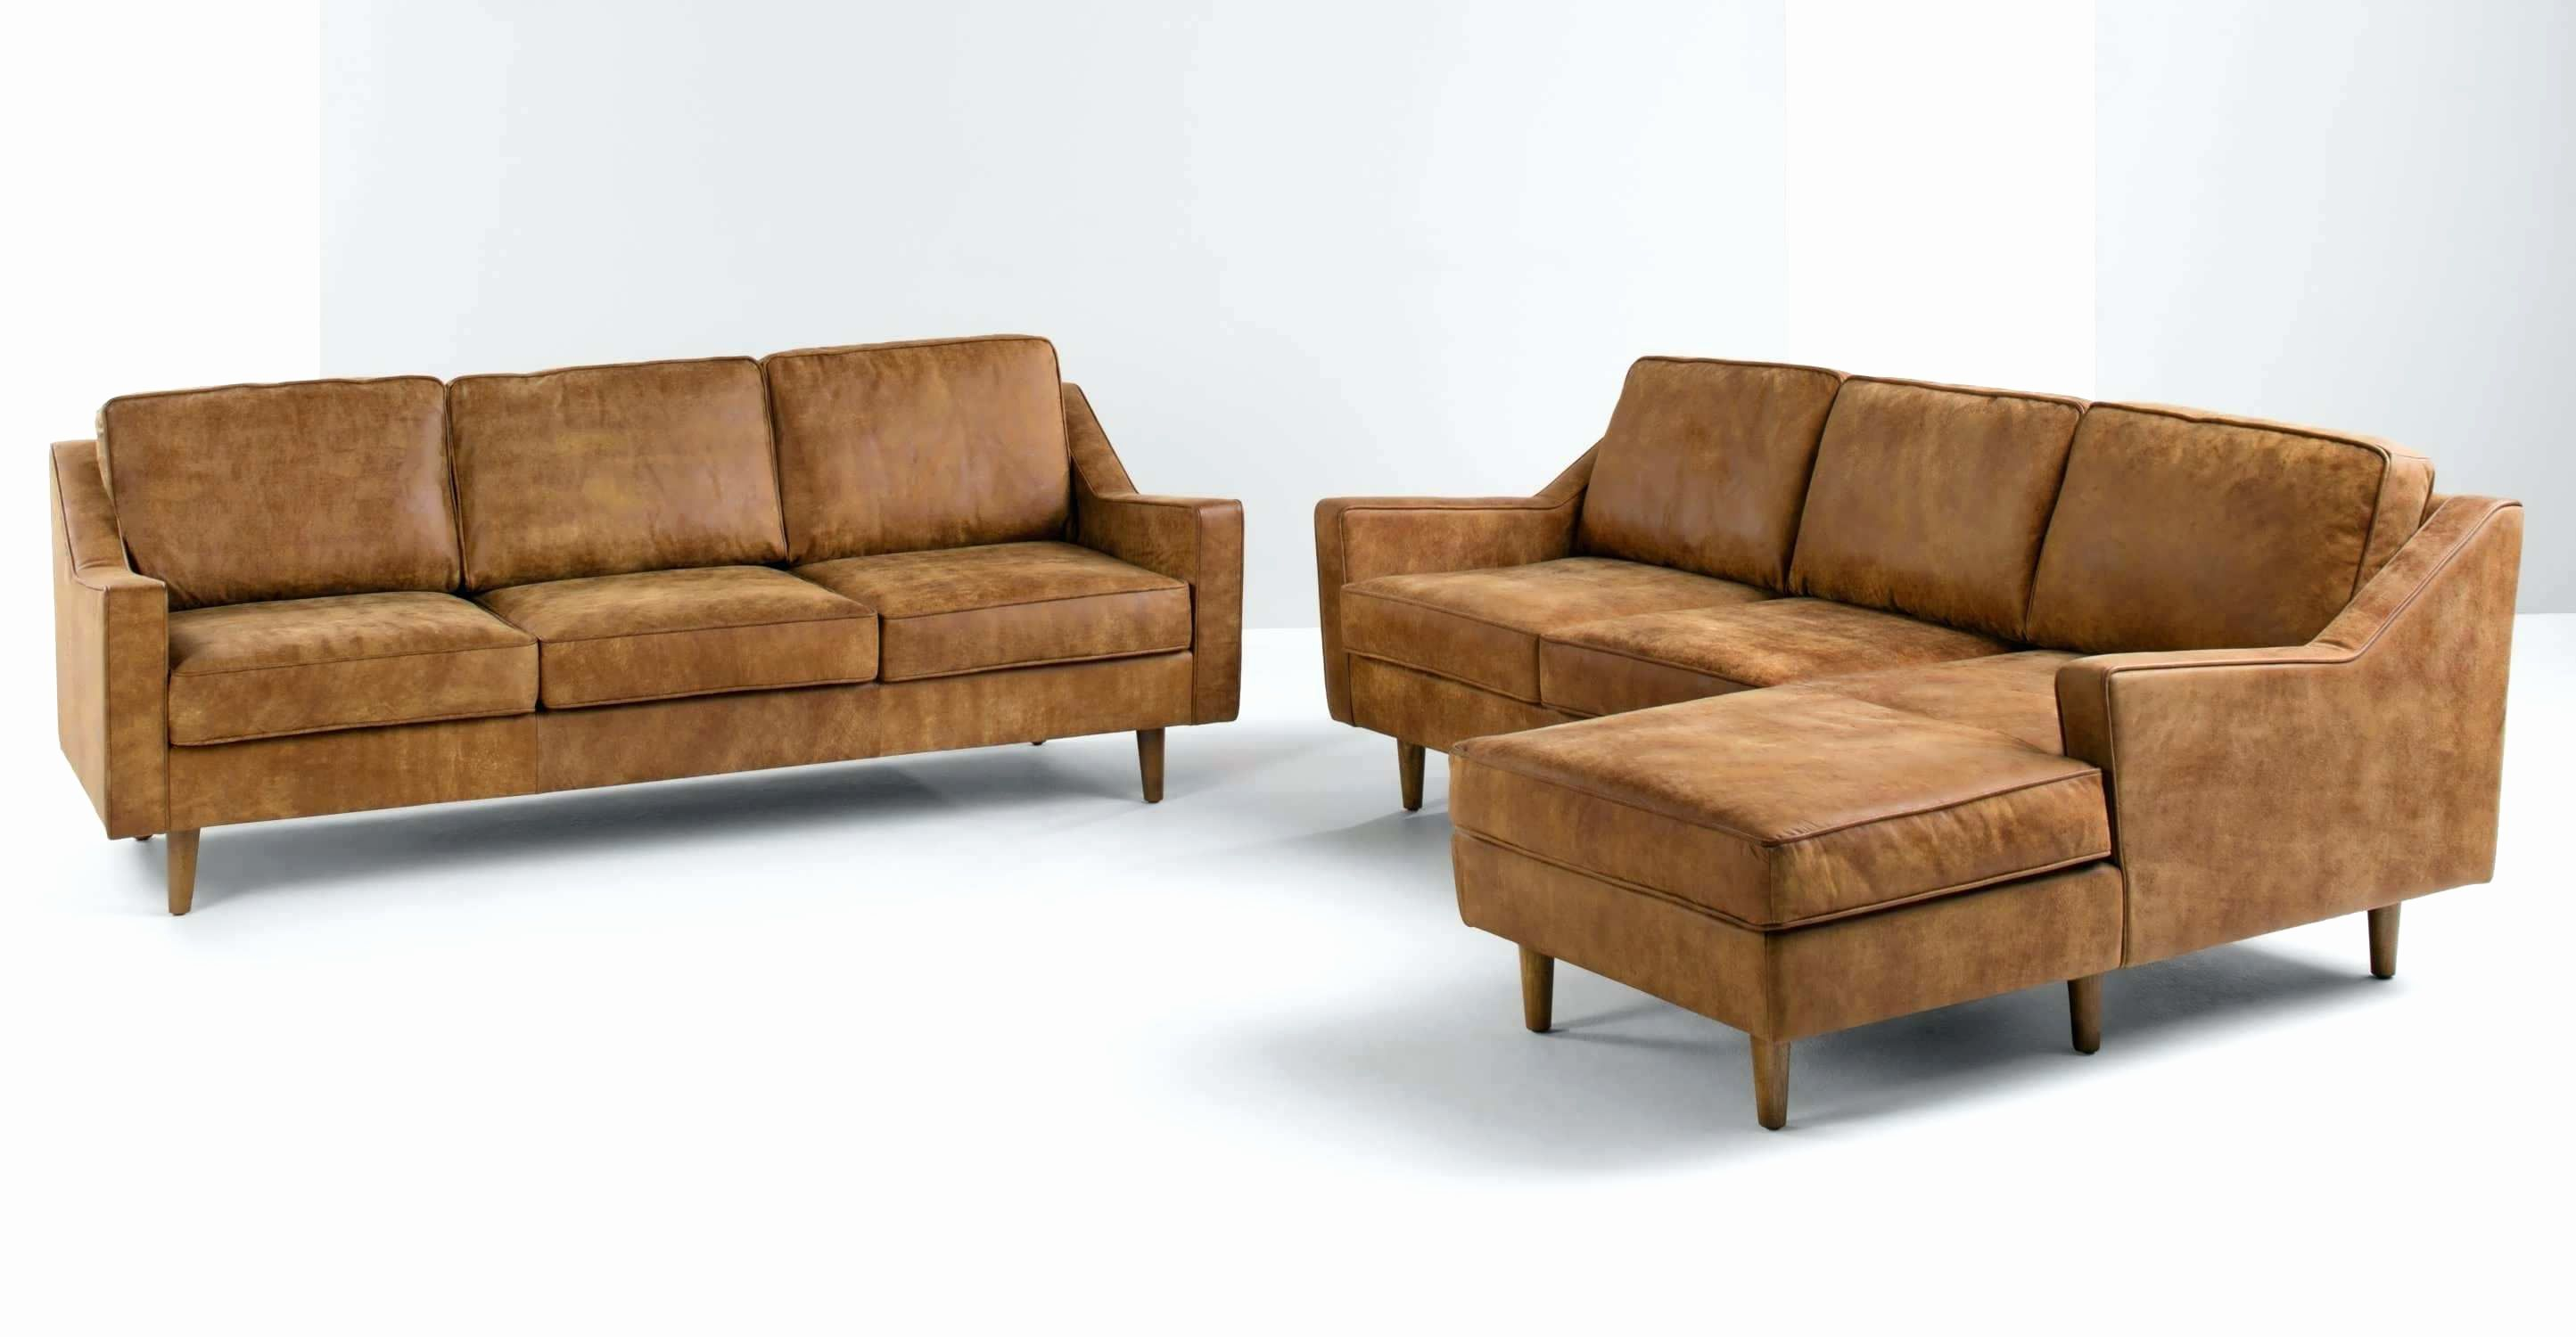 Beautiful Leather Vs Fabric Sofa Photographs Couches Fabric And Leather Couches This Sectional Is Simple At Check More Corner Sofa 3 Seater Sofa Couch Fabric